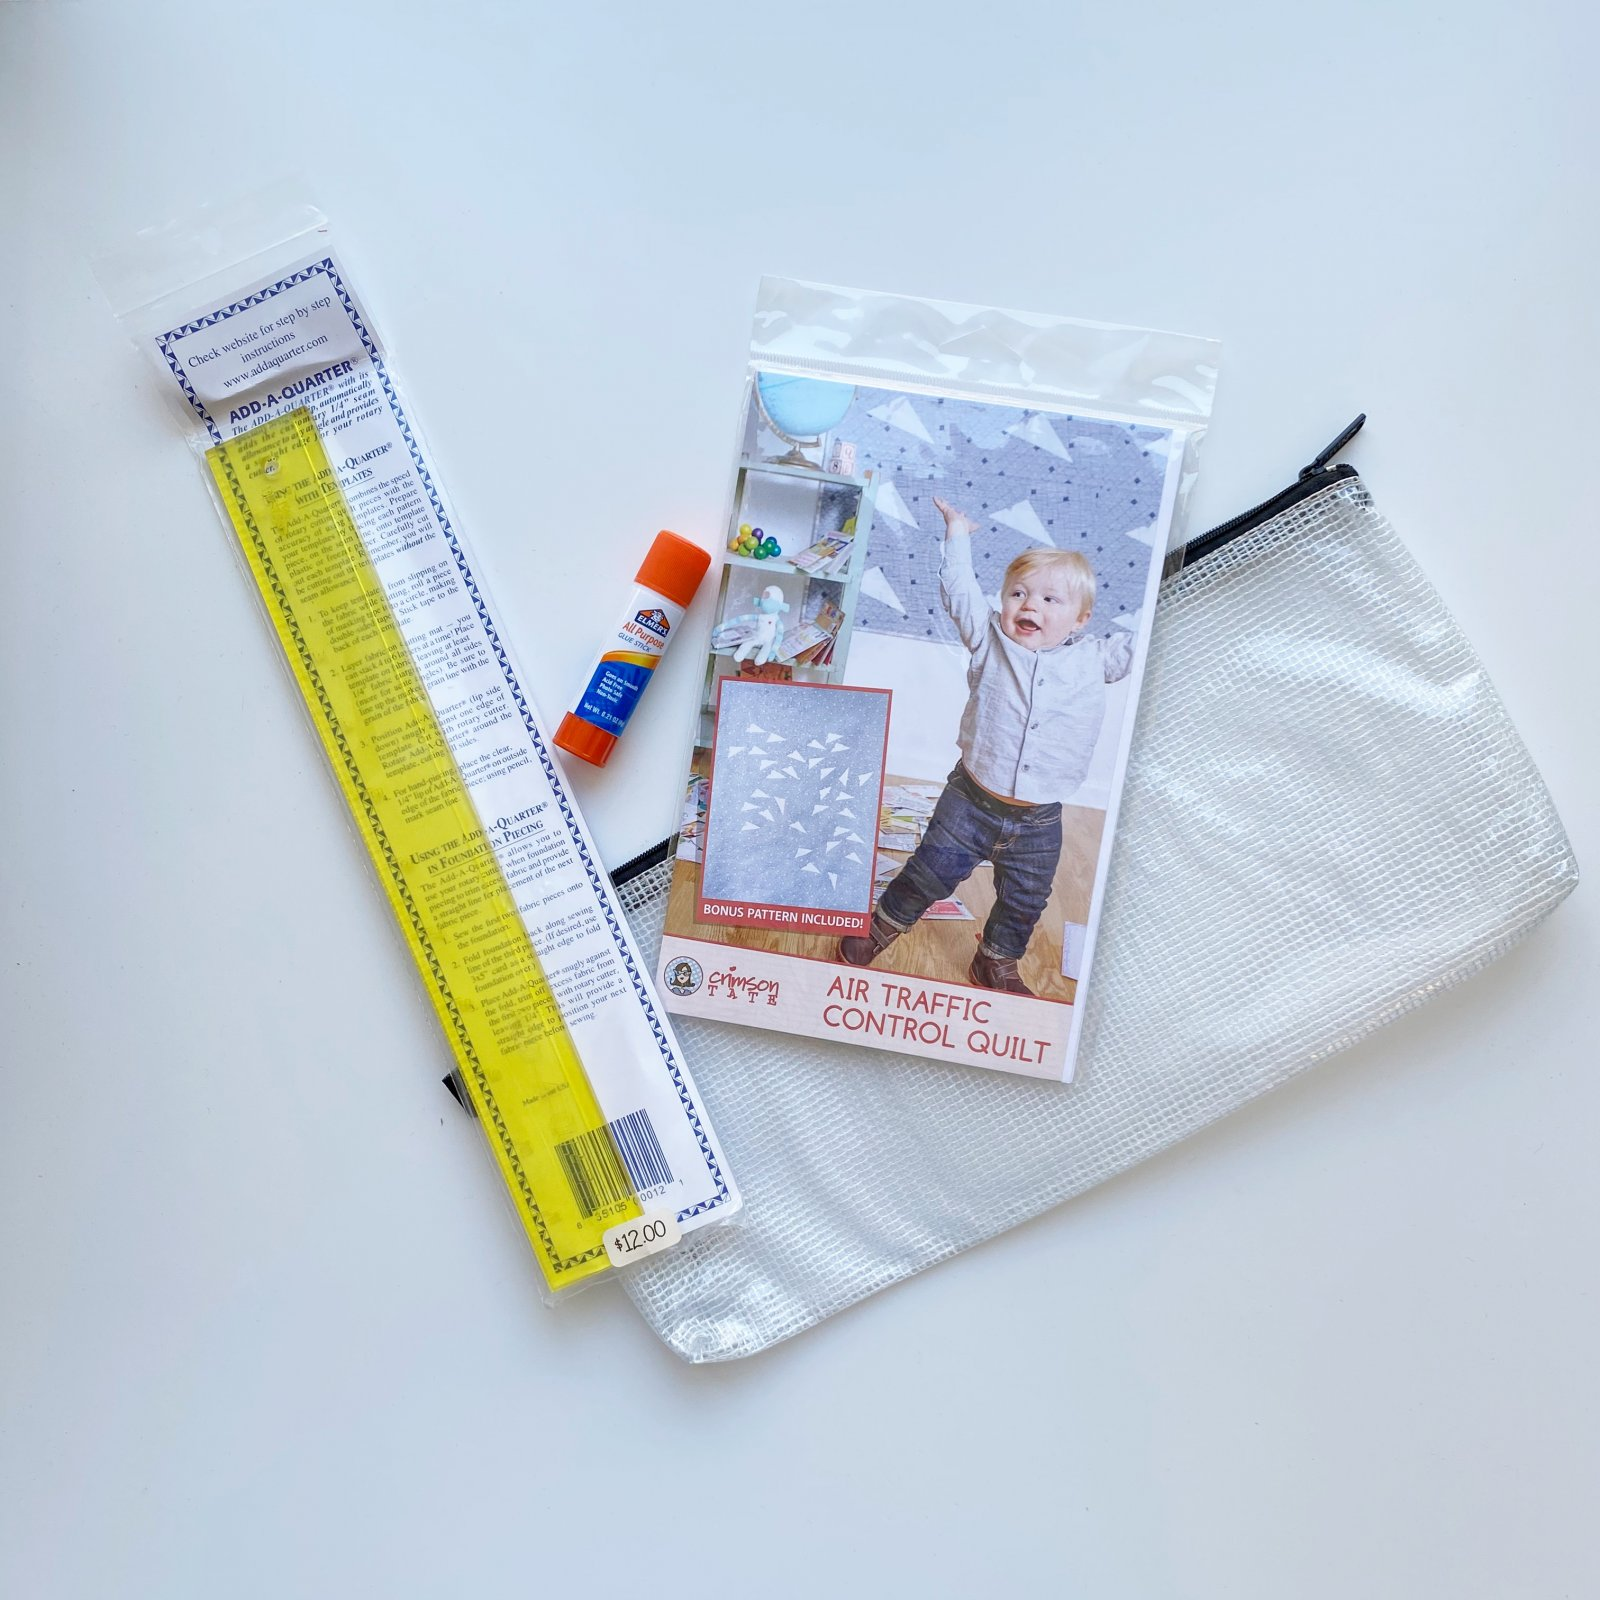 Air Traffic Control Quilt Supply Kit